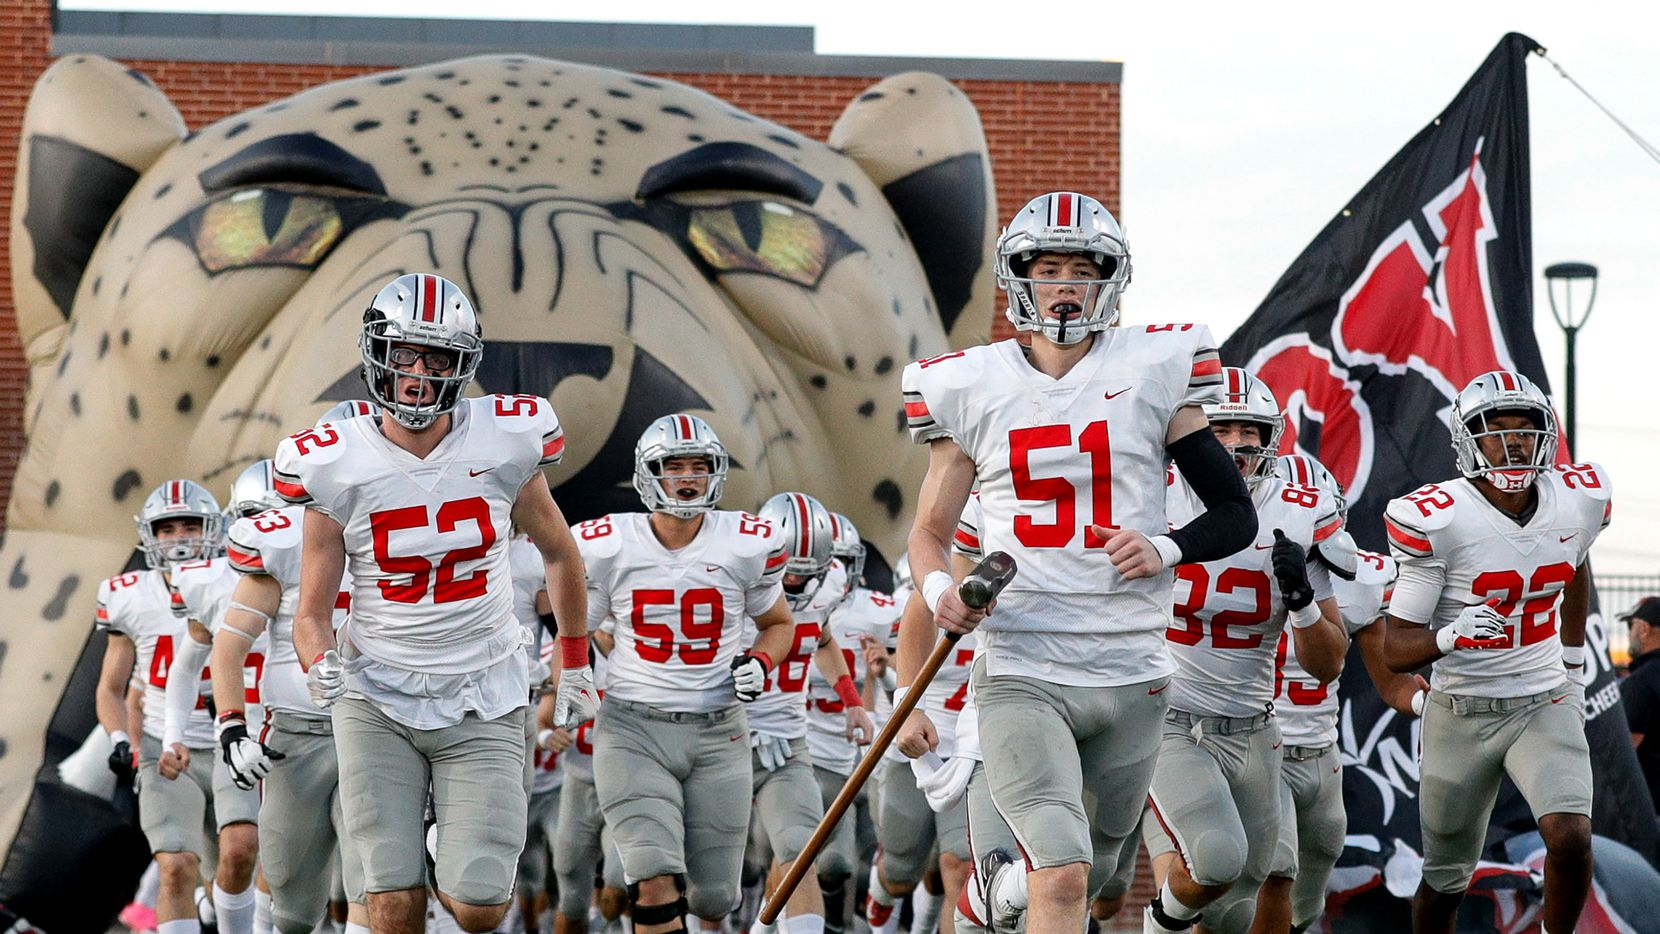 The Lovejoy Leopards enter the field to face Prosper Rock Hill in a District 7-5A high school football game played at the Children's Health Stadium on Friday, Oct. 1, 2021, in Prosper.